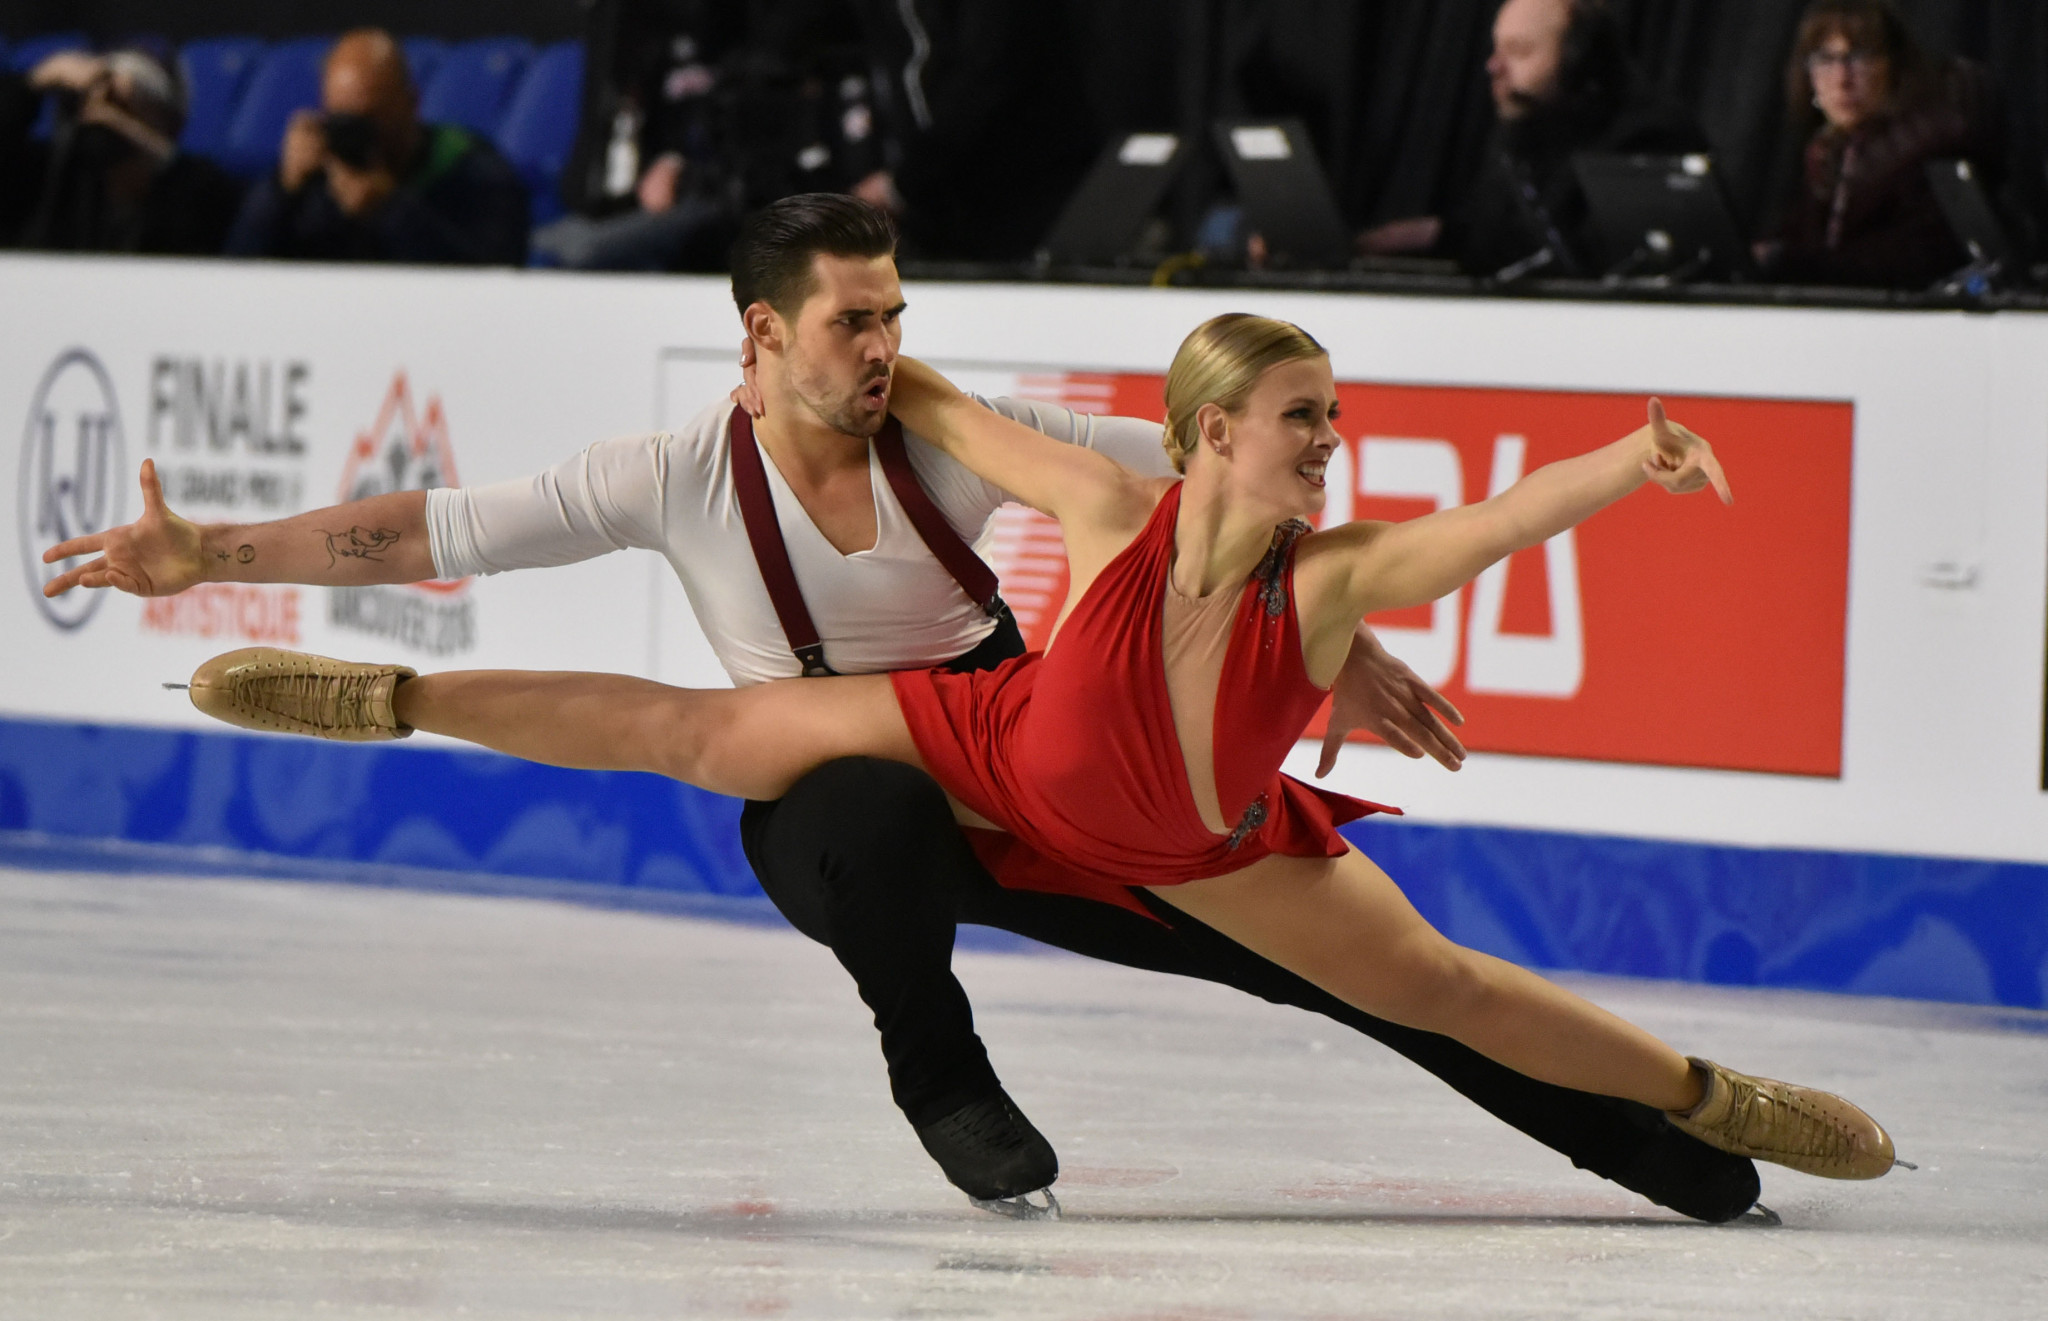 Grand Prix of Figure Skating events confirmed for next two seasons